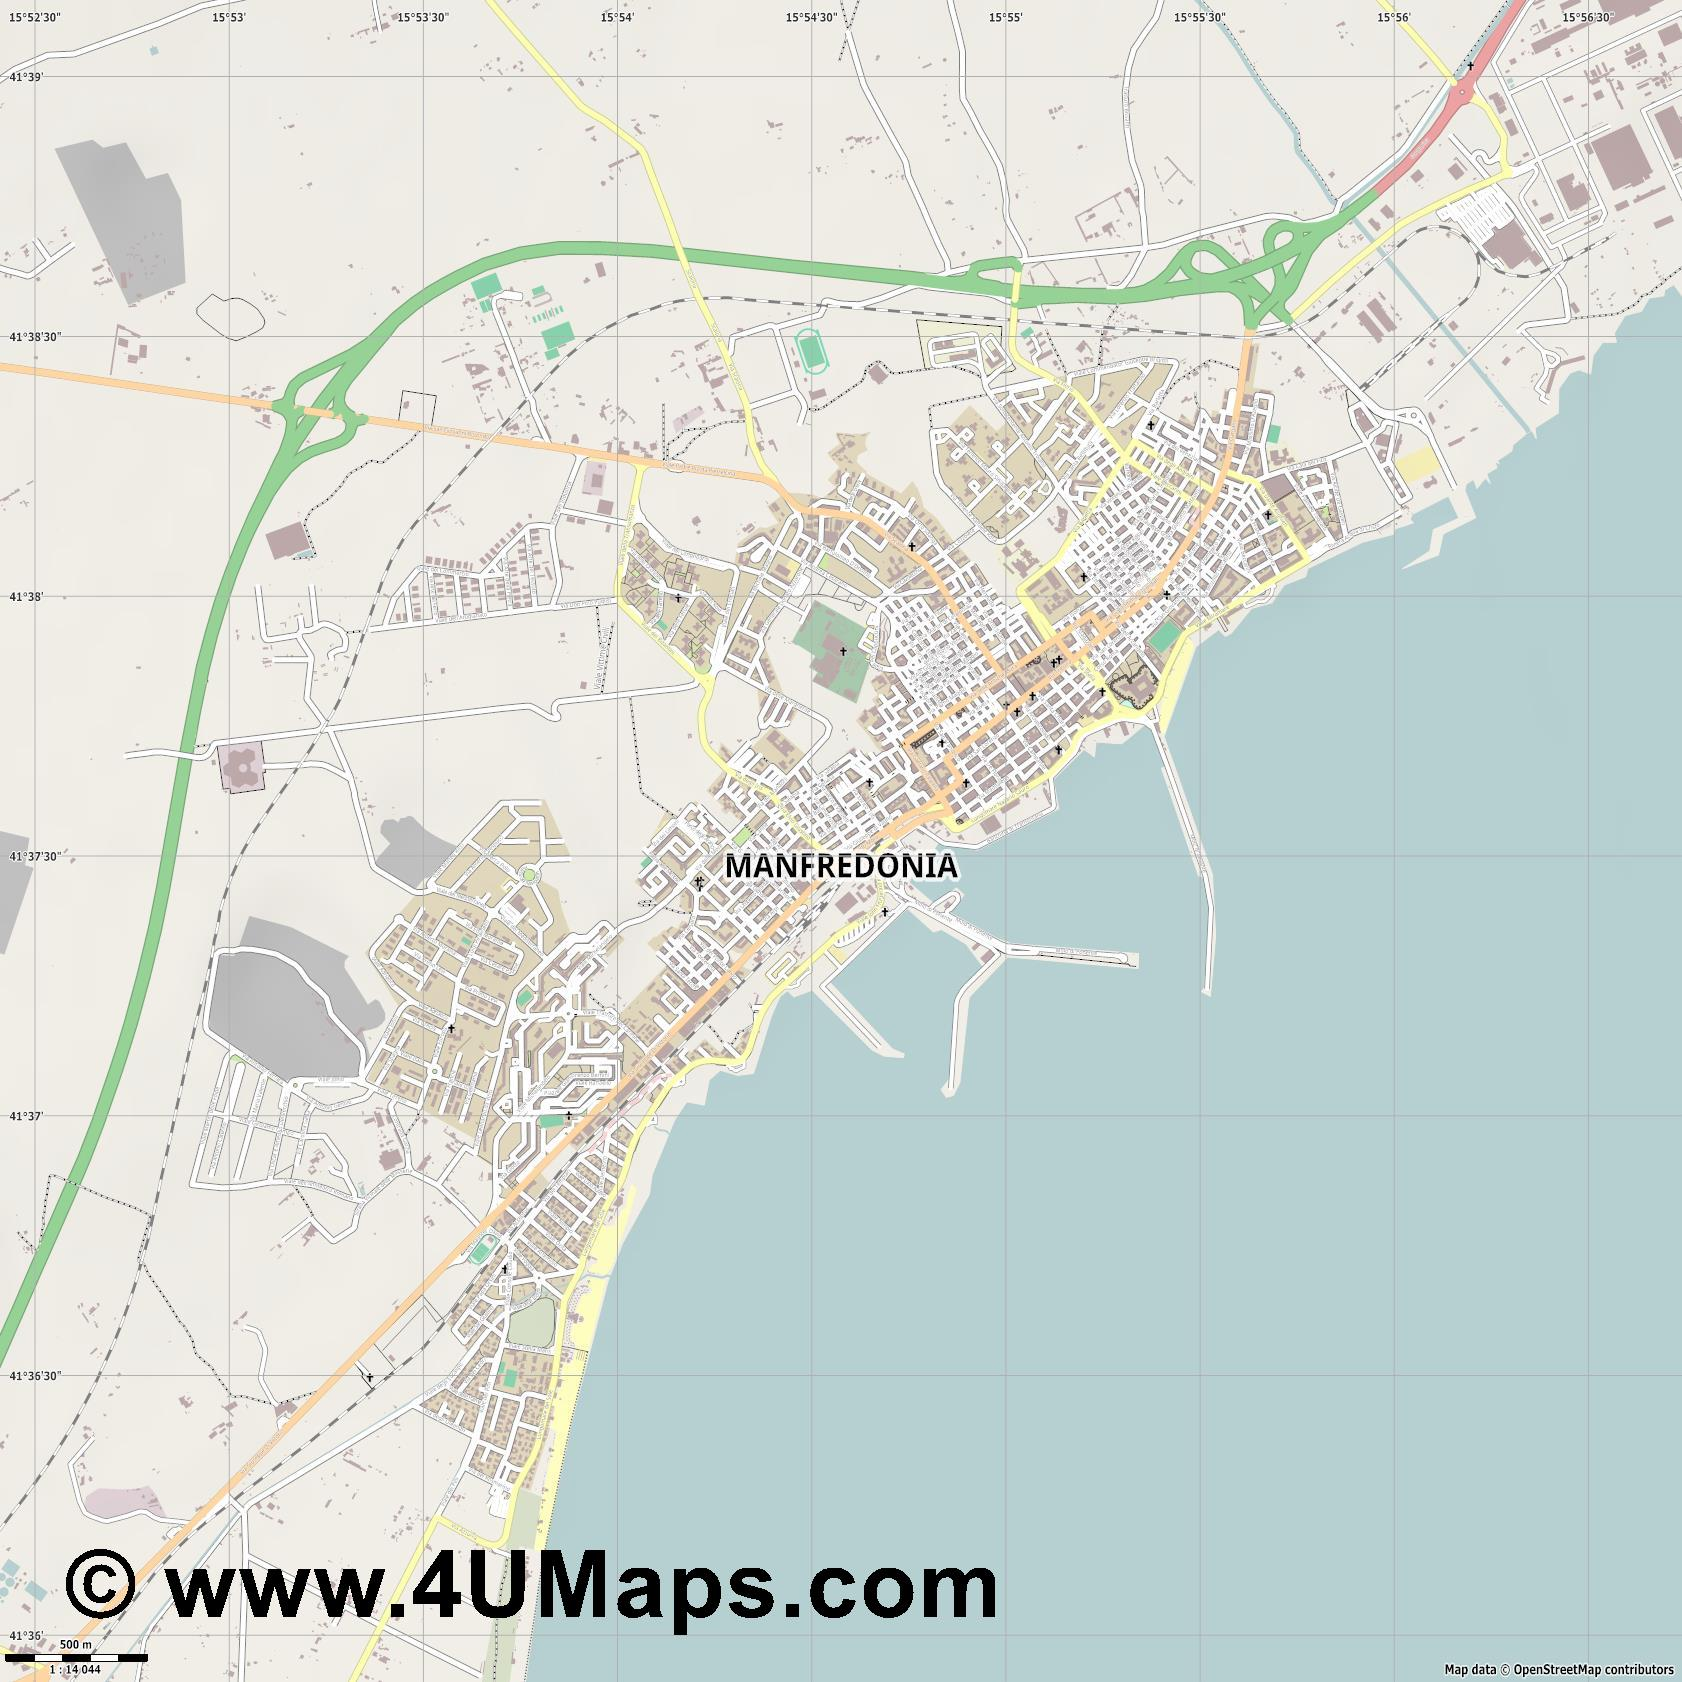 Manfredonia  jpg ultra high detail preview vector city map